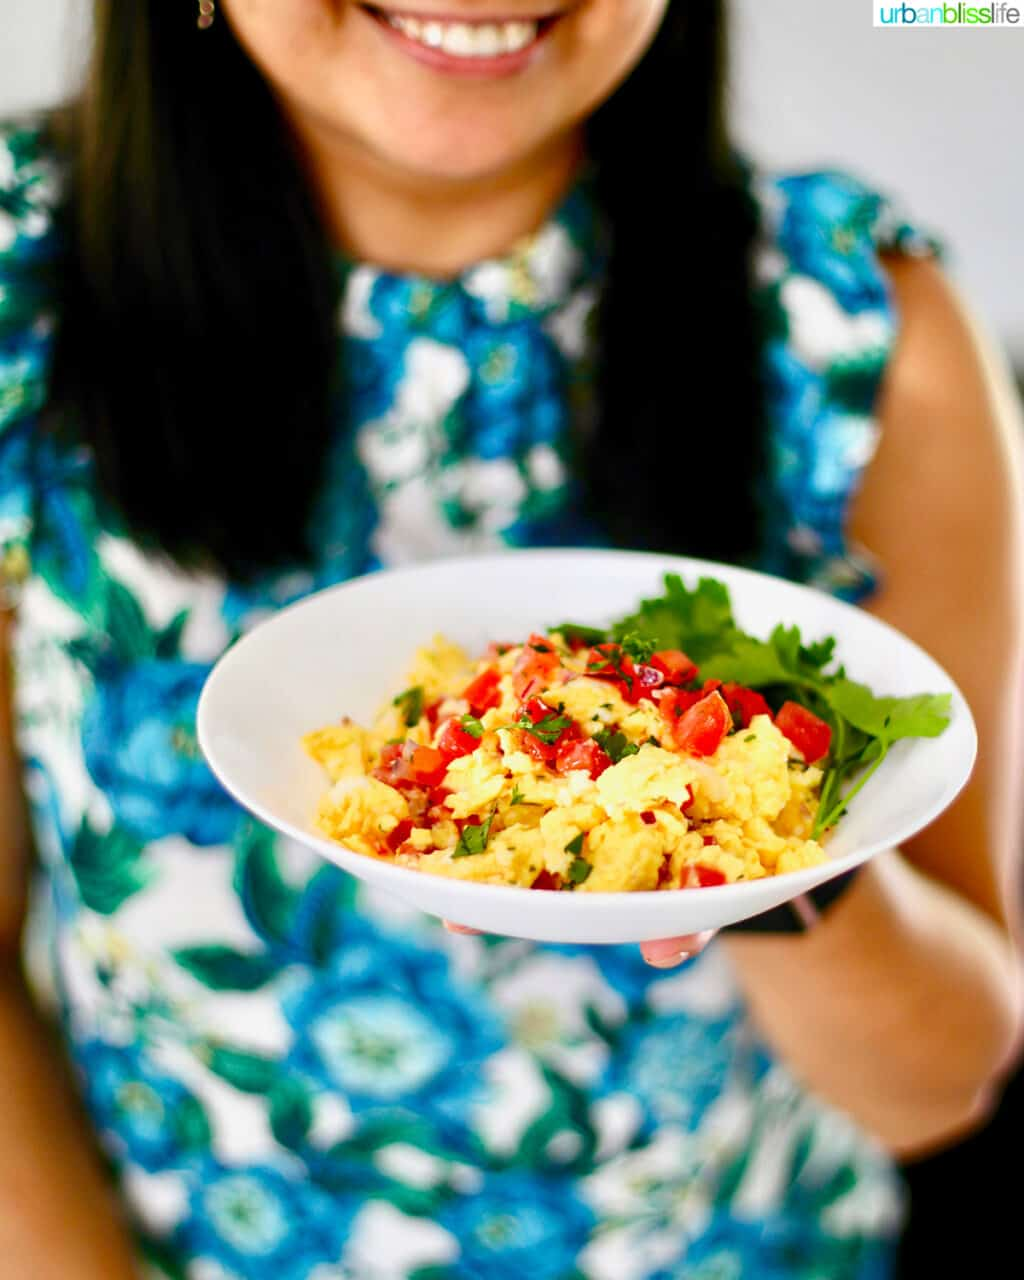 holding bowl of salsa eggs against backdrop of blue and white floral shirt